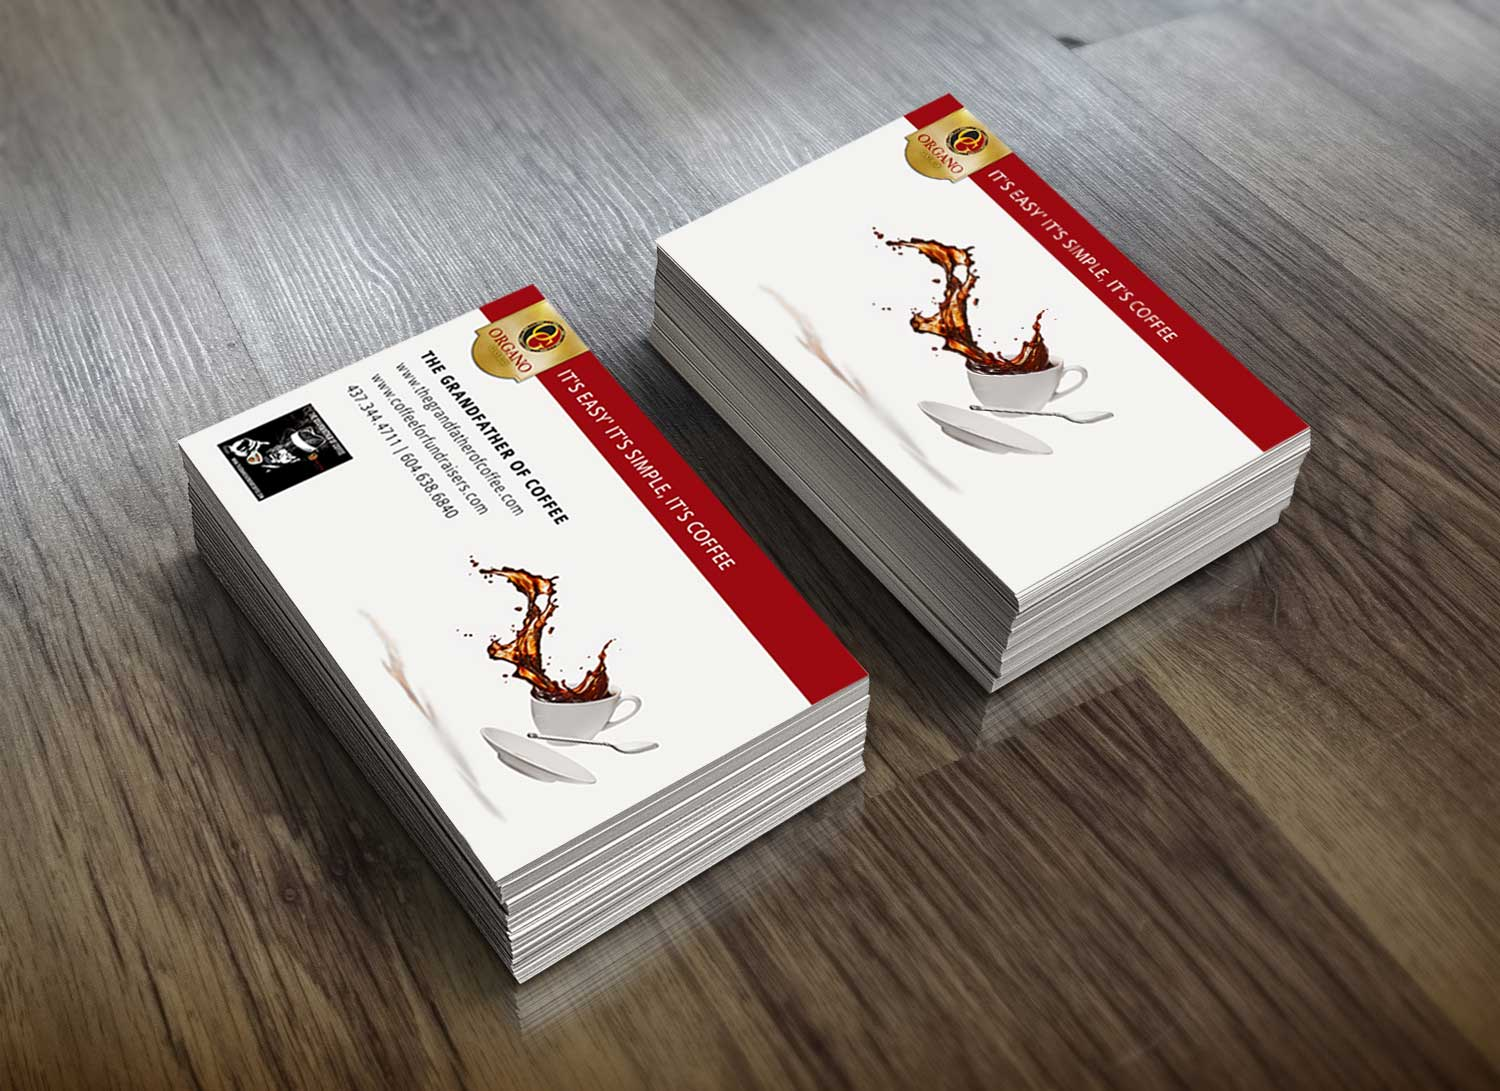 Customized creative business cards designs services